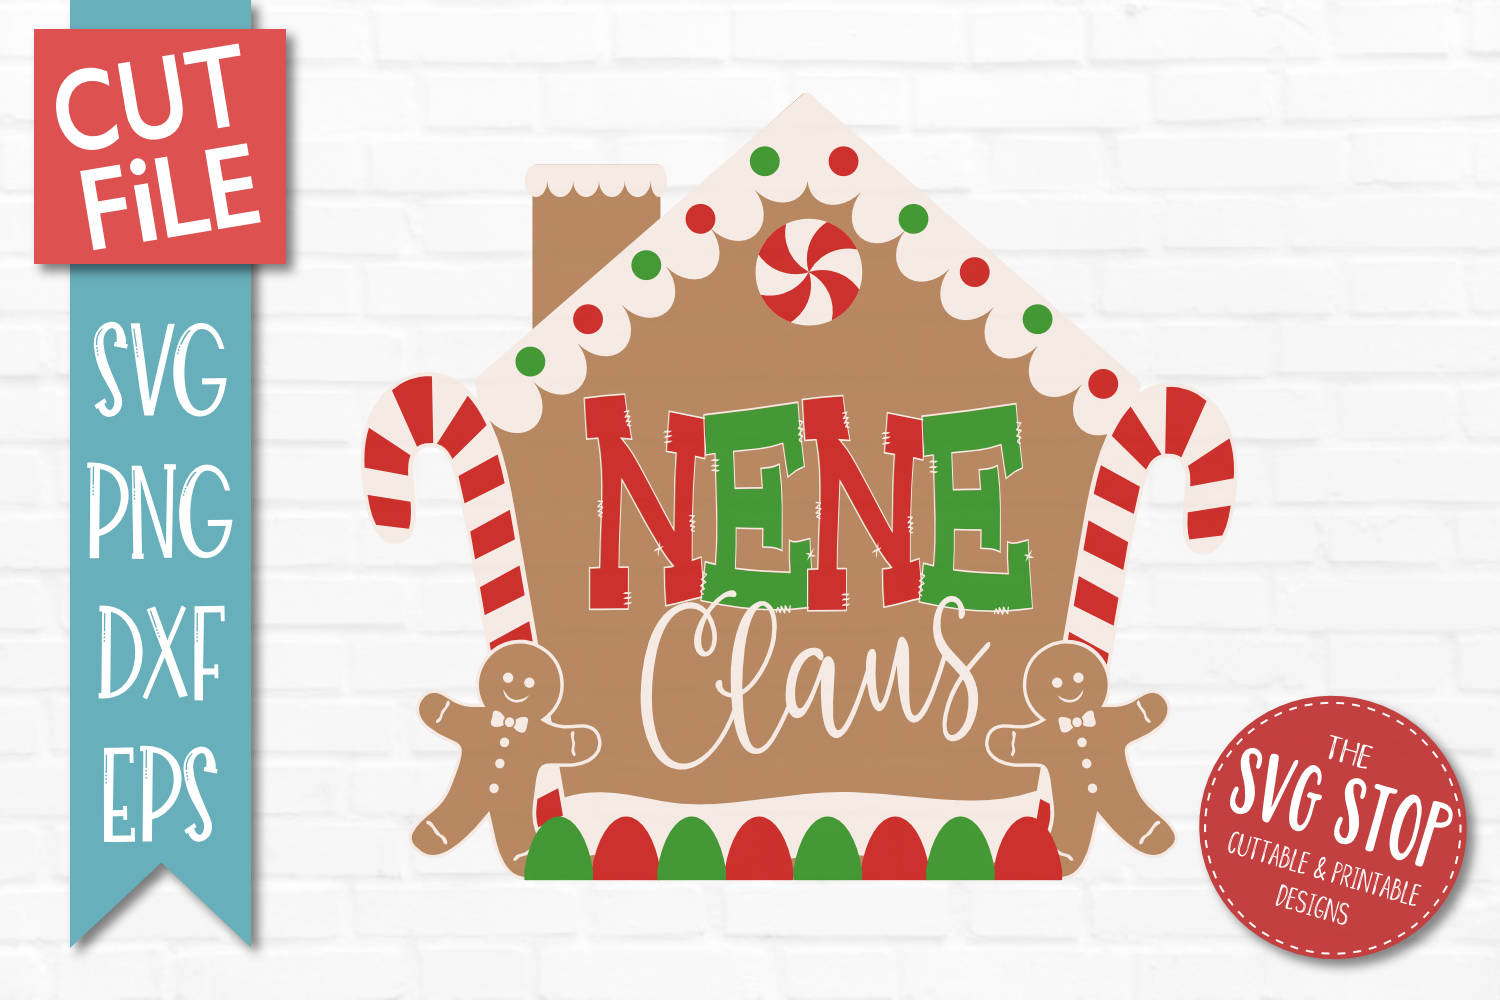 Nene Claus Gingerbread Christmas SVG, PNG, DXF, EPS example image 1